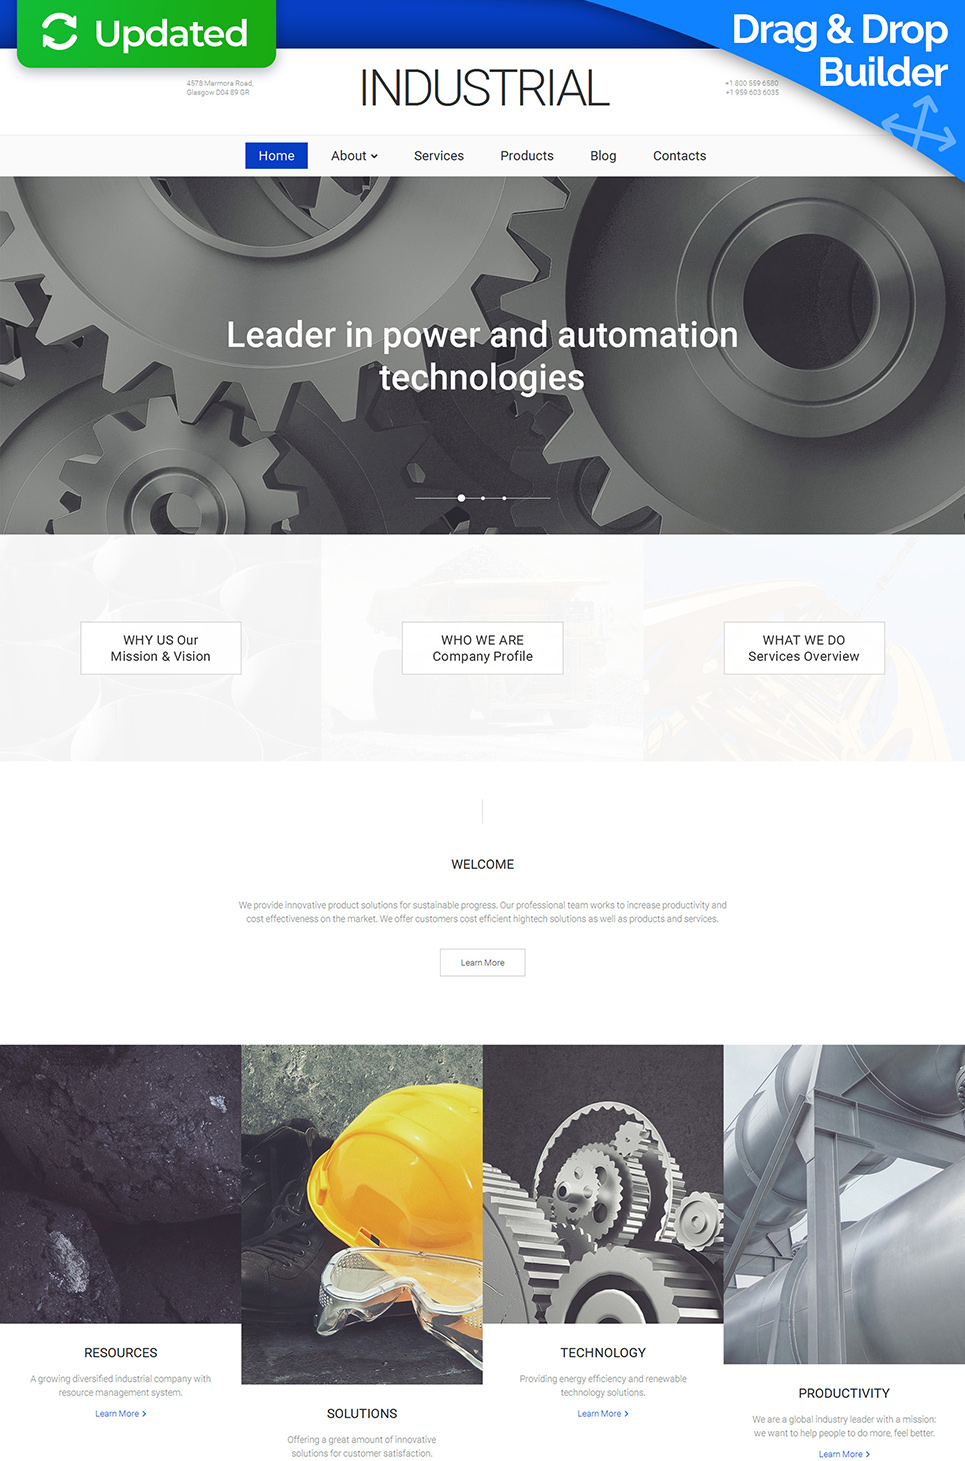 Minimalistic web design for manufacturers